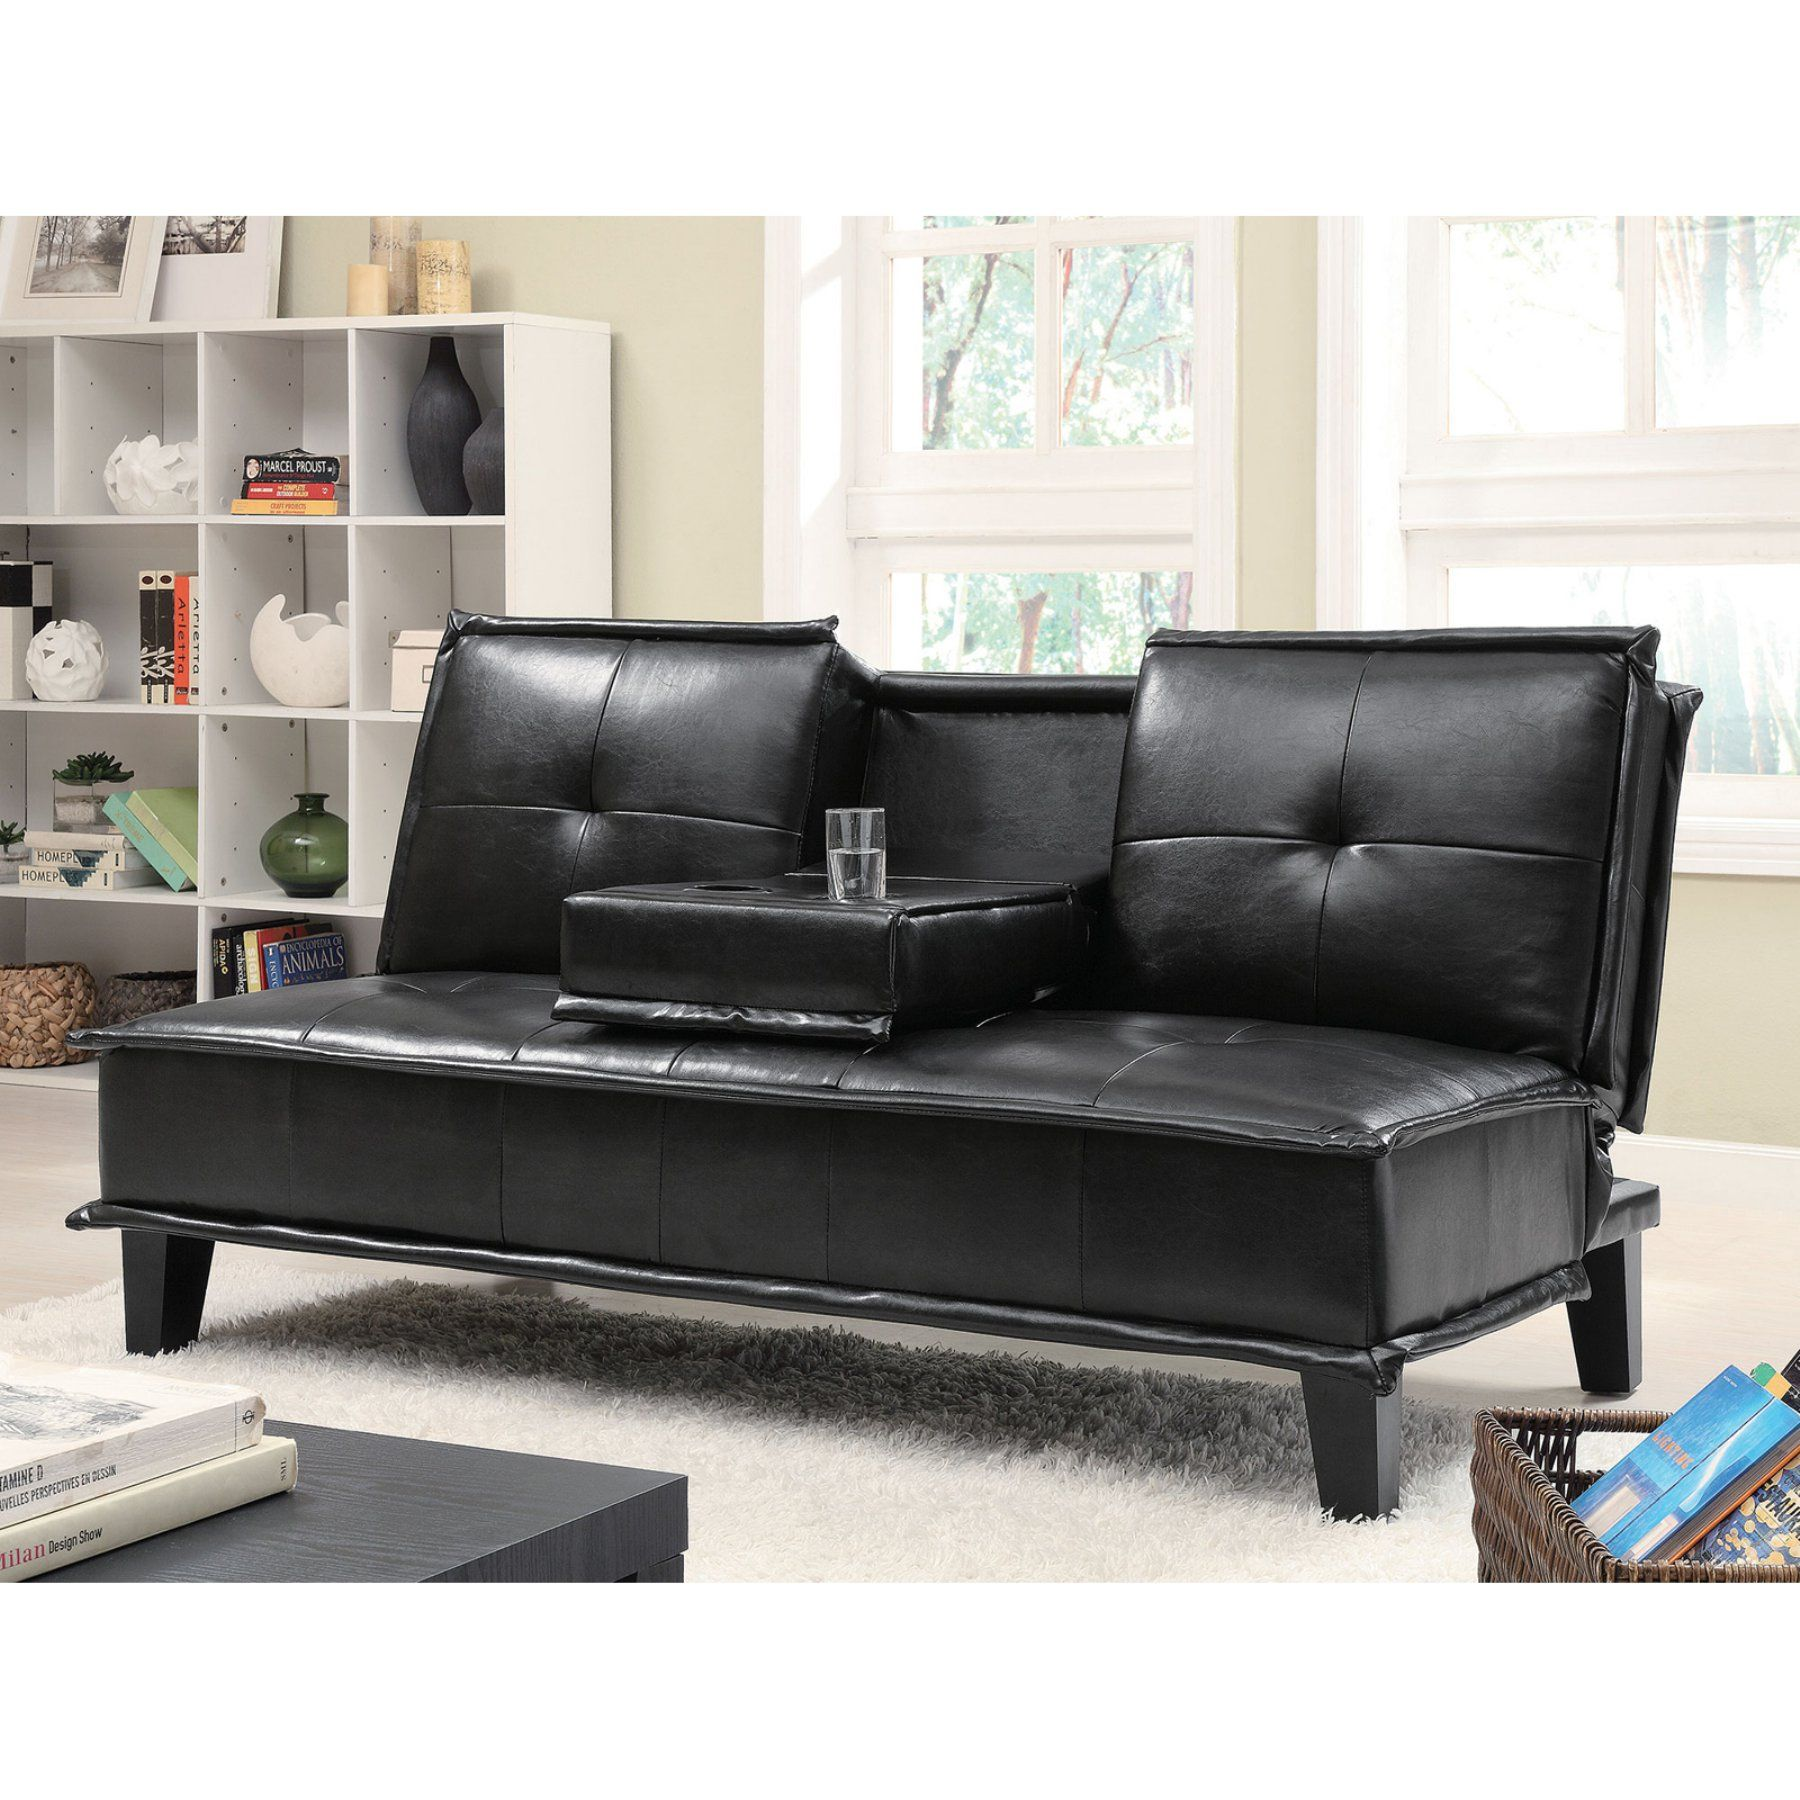 Prime Coaster Benton Convertible Sofa Products Sofa Futon Machost Co Dining Chair Design Ideas Machostcouk